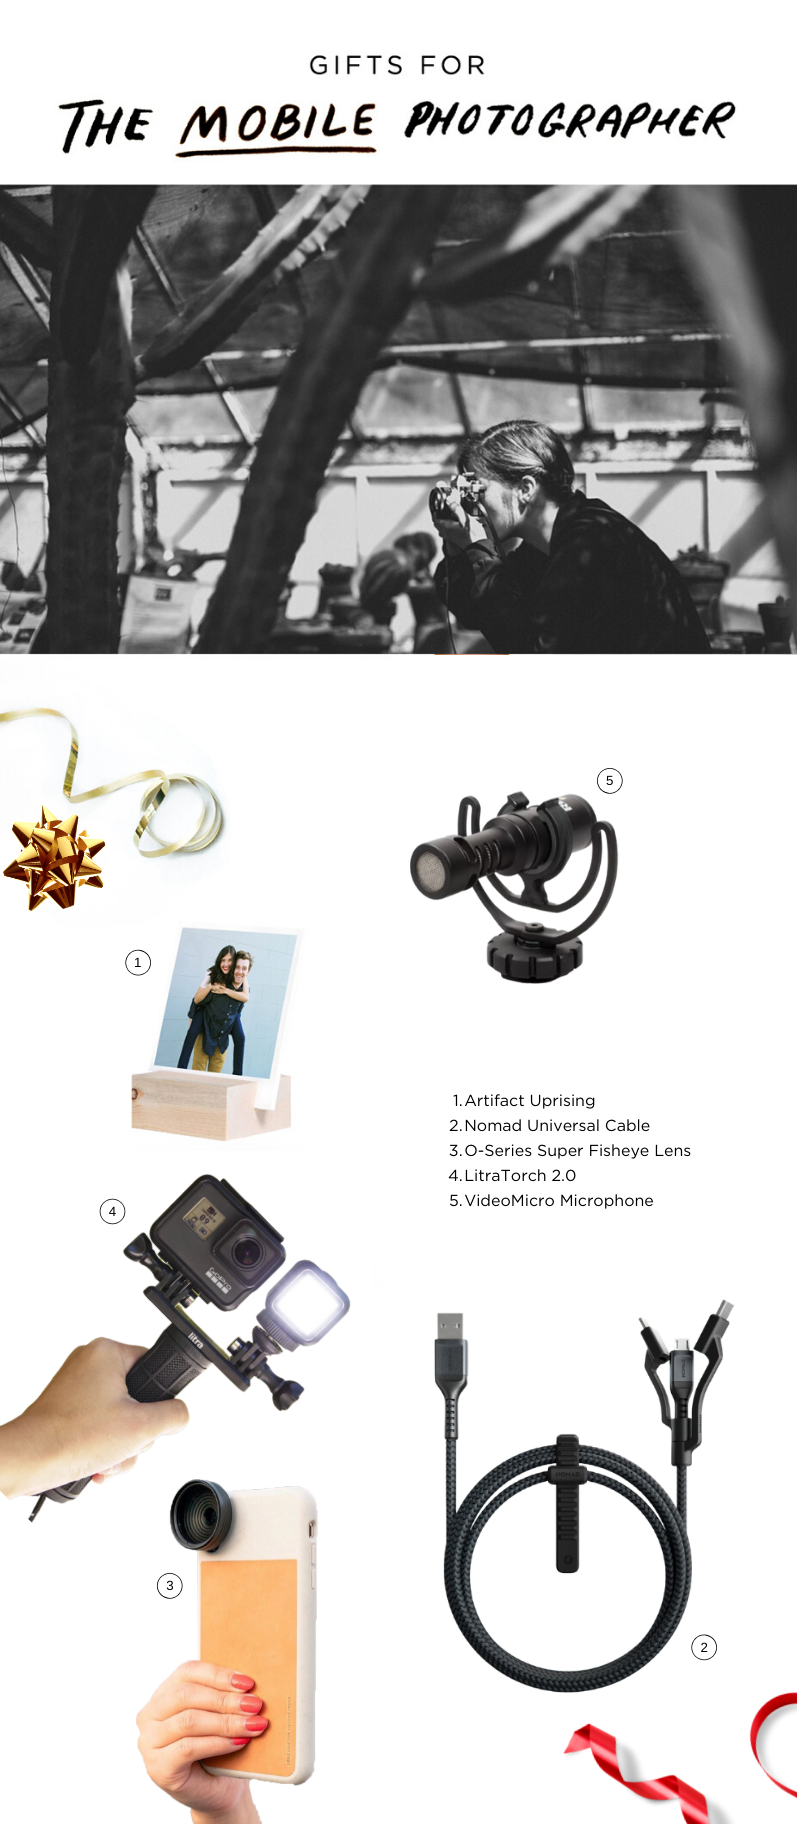 Best Holiday Gifts For the Mobile Photographer